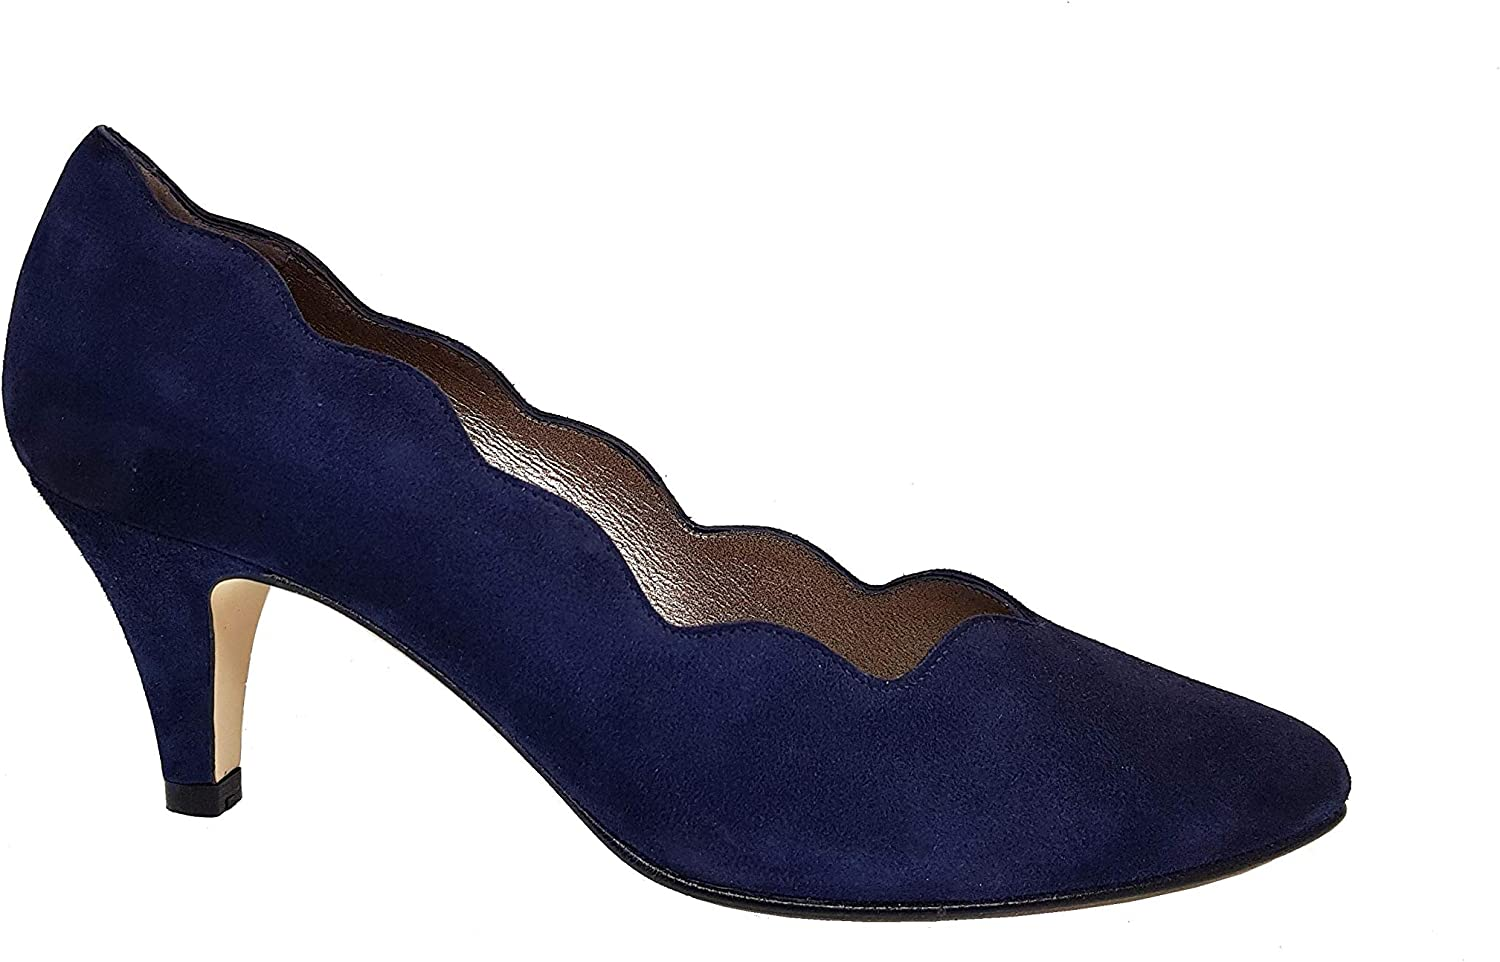 Navy Blue Leather Pumps Court Shoes for